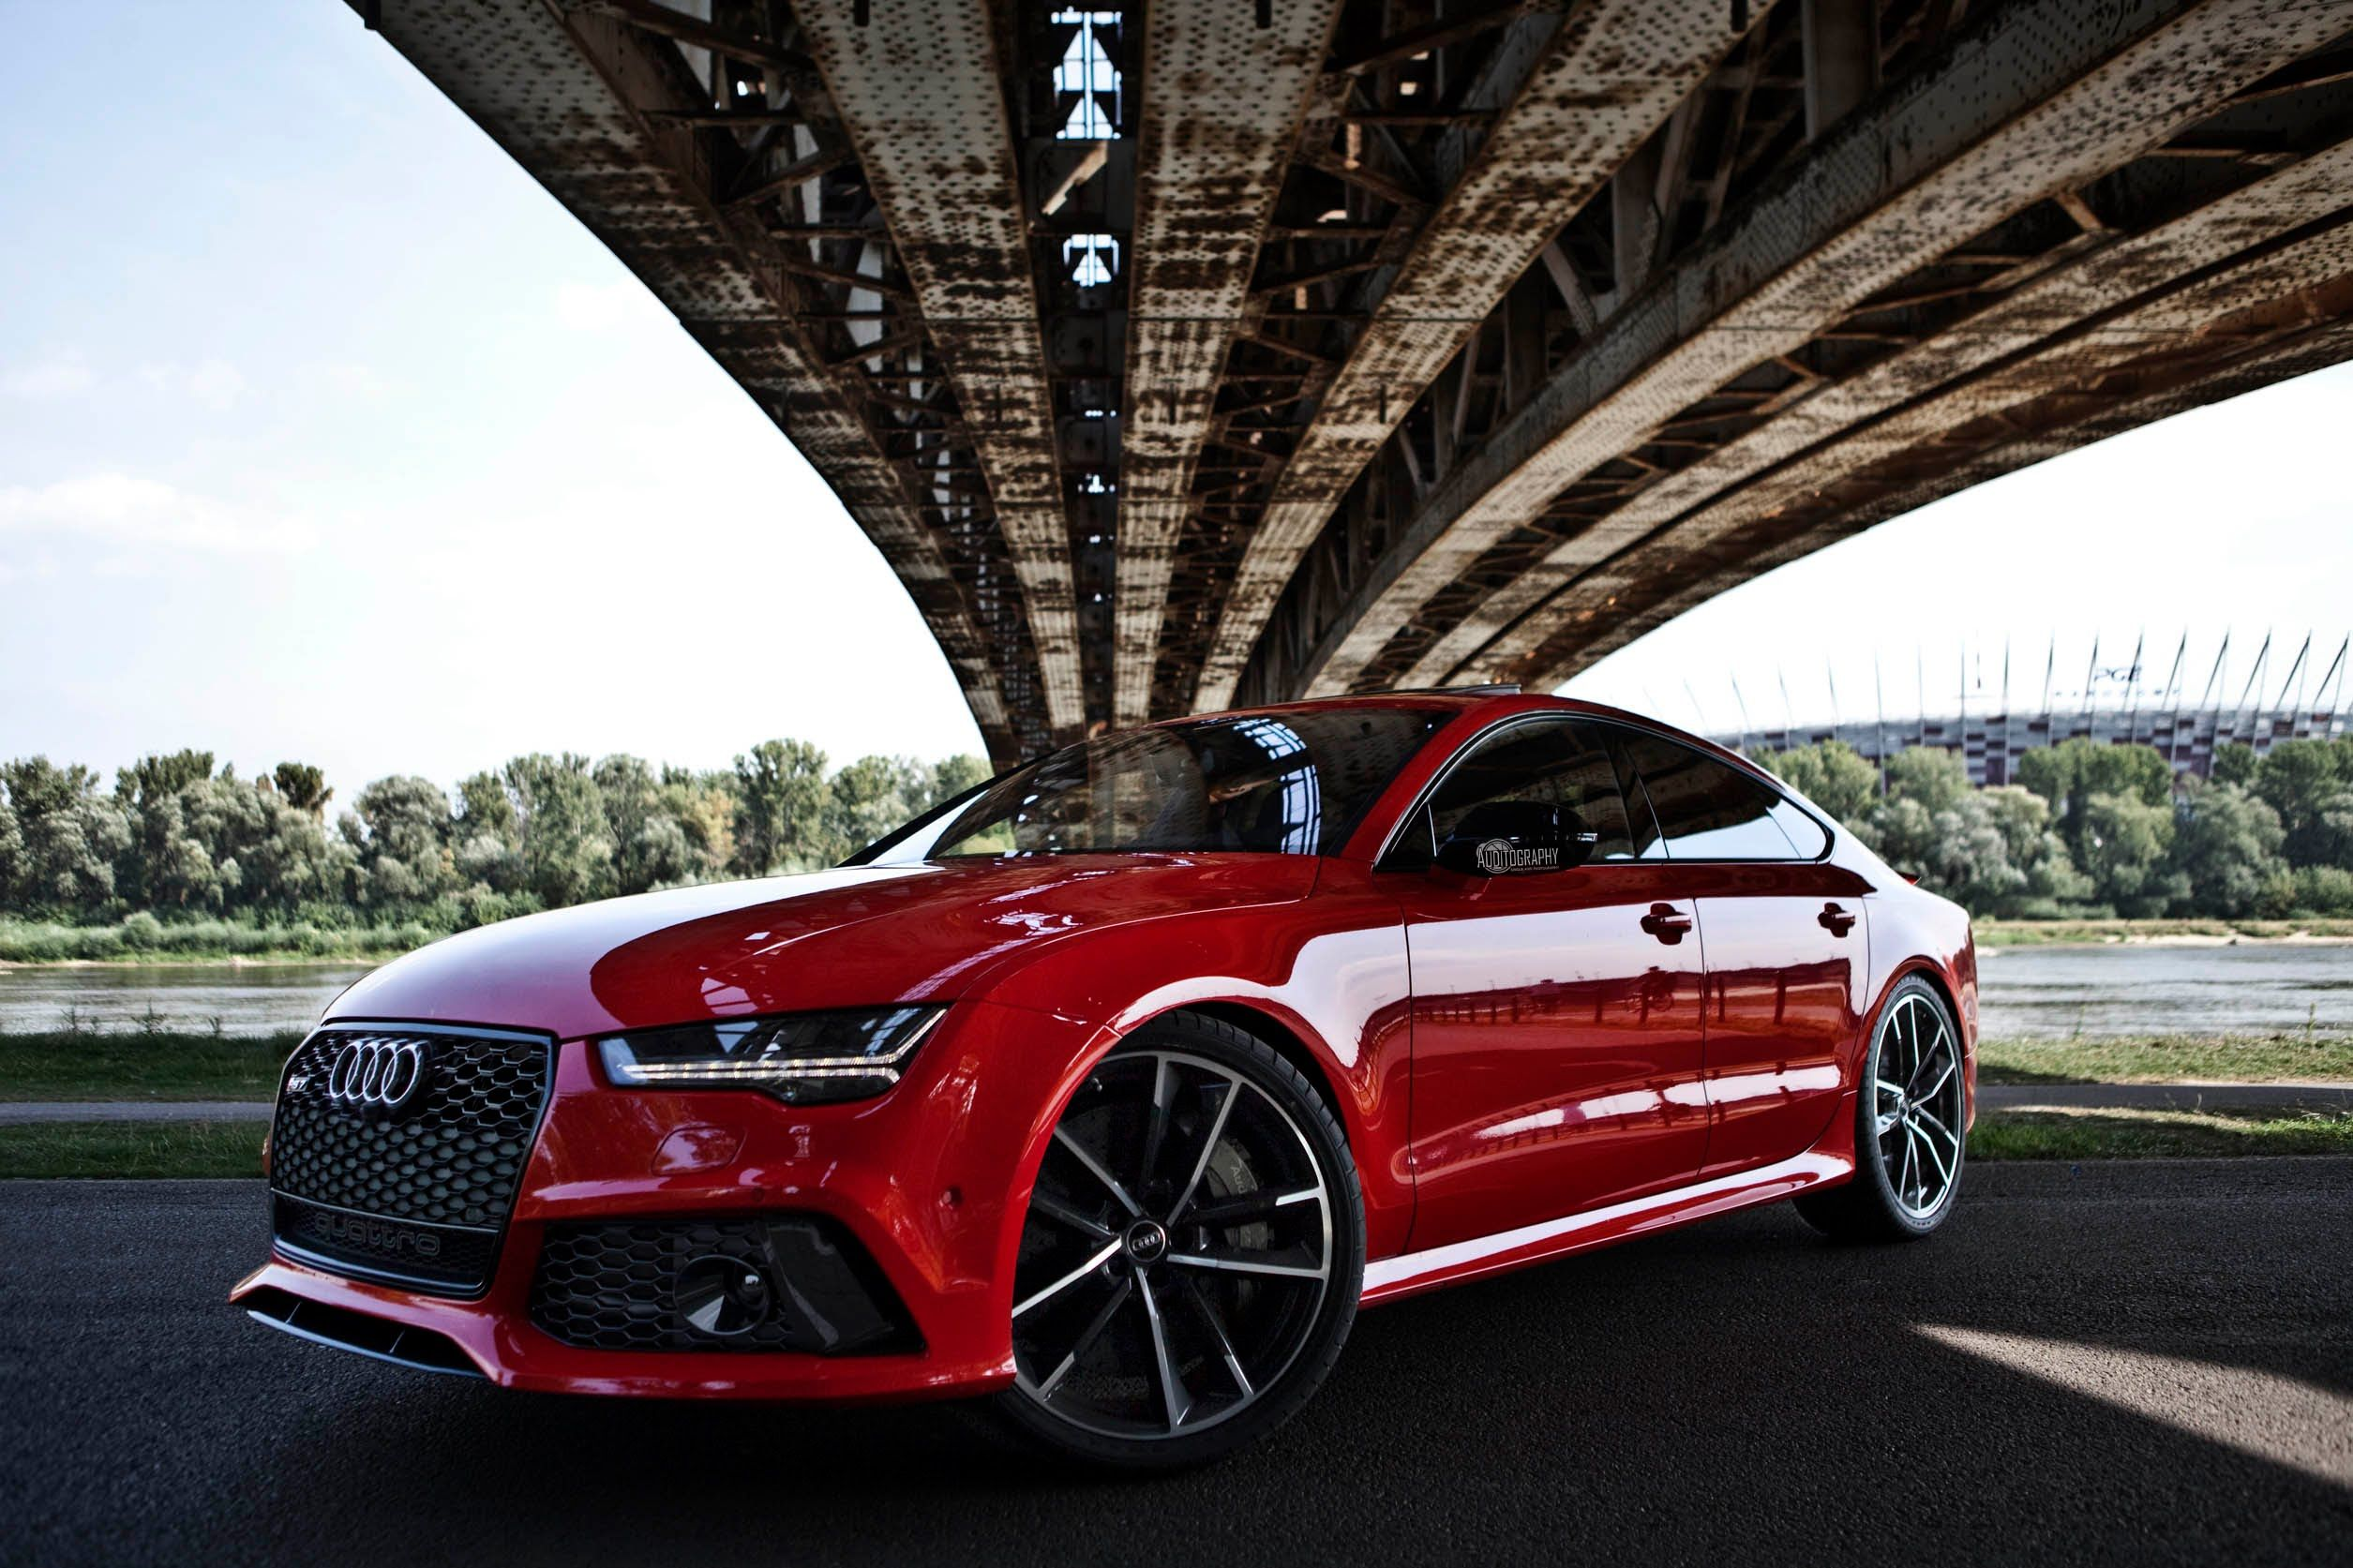 2017 605hp Audi Rs7 Performance Details Launch Acceleration Interior Red Audi Audi Rs7 Sportback Audi Rs7